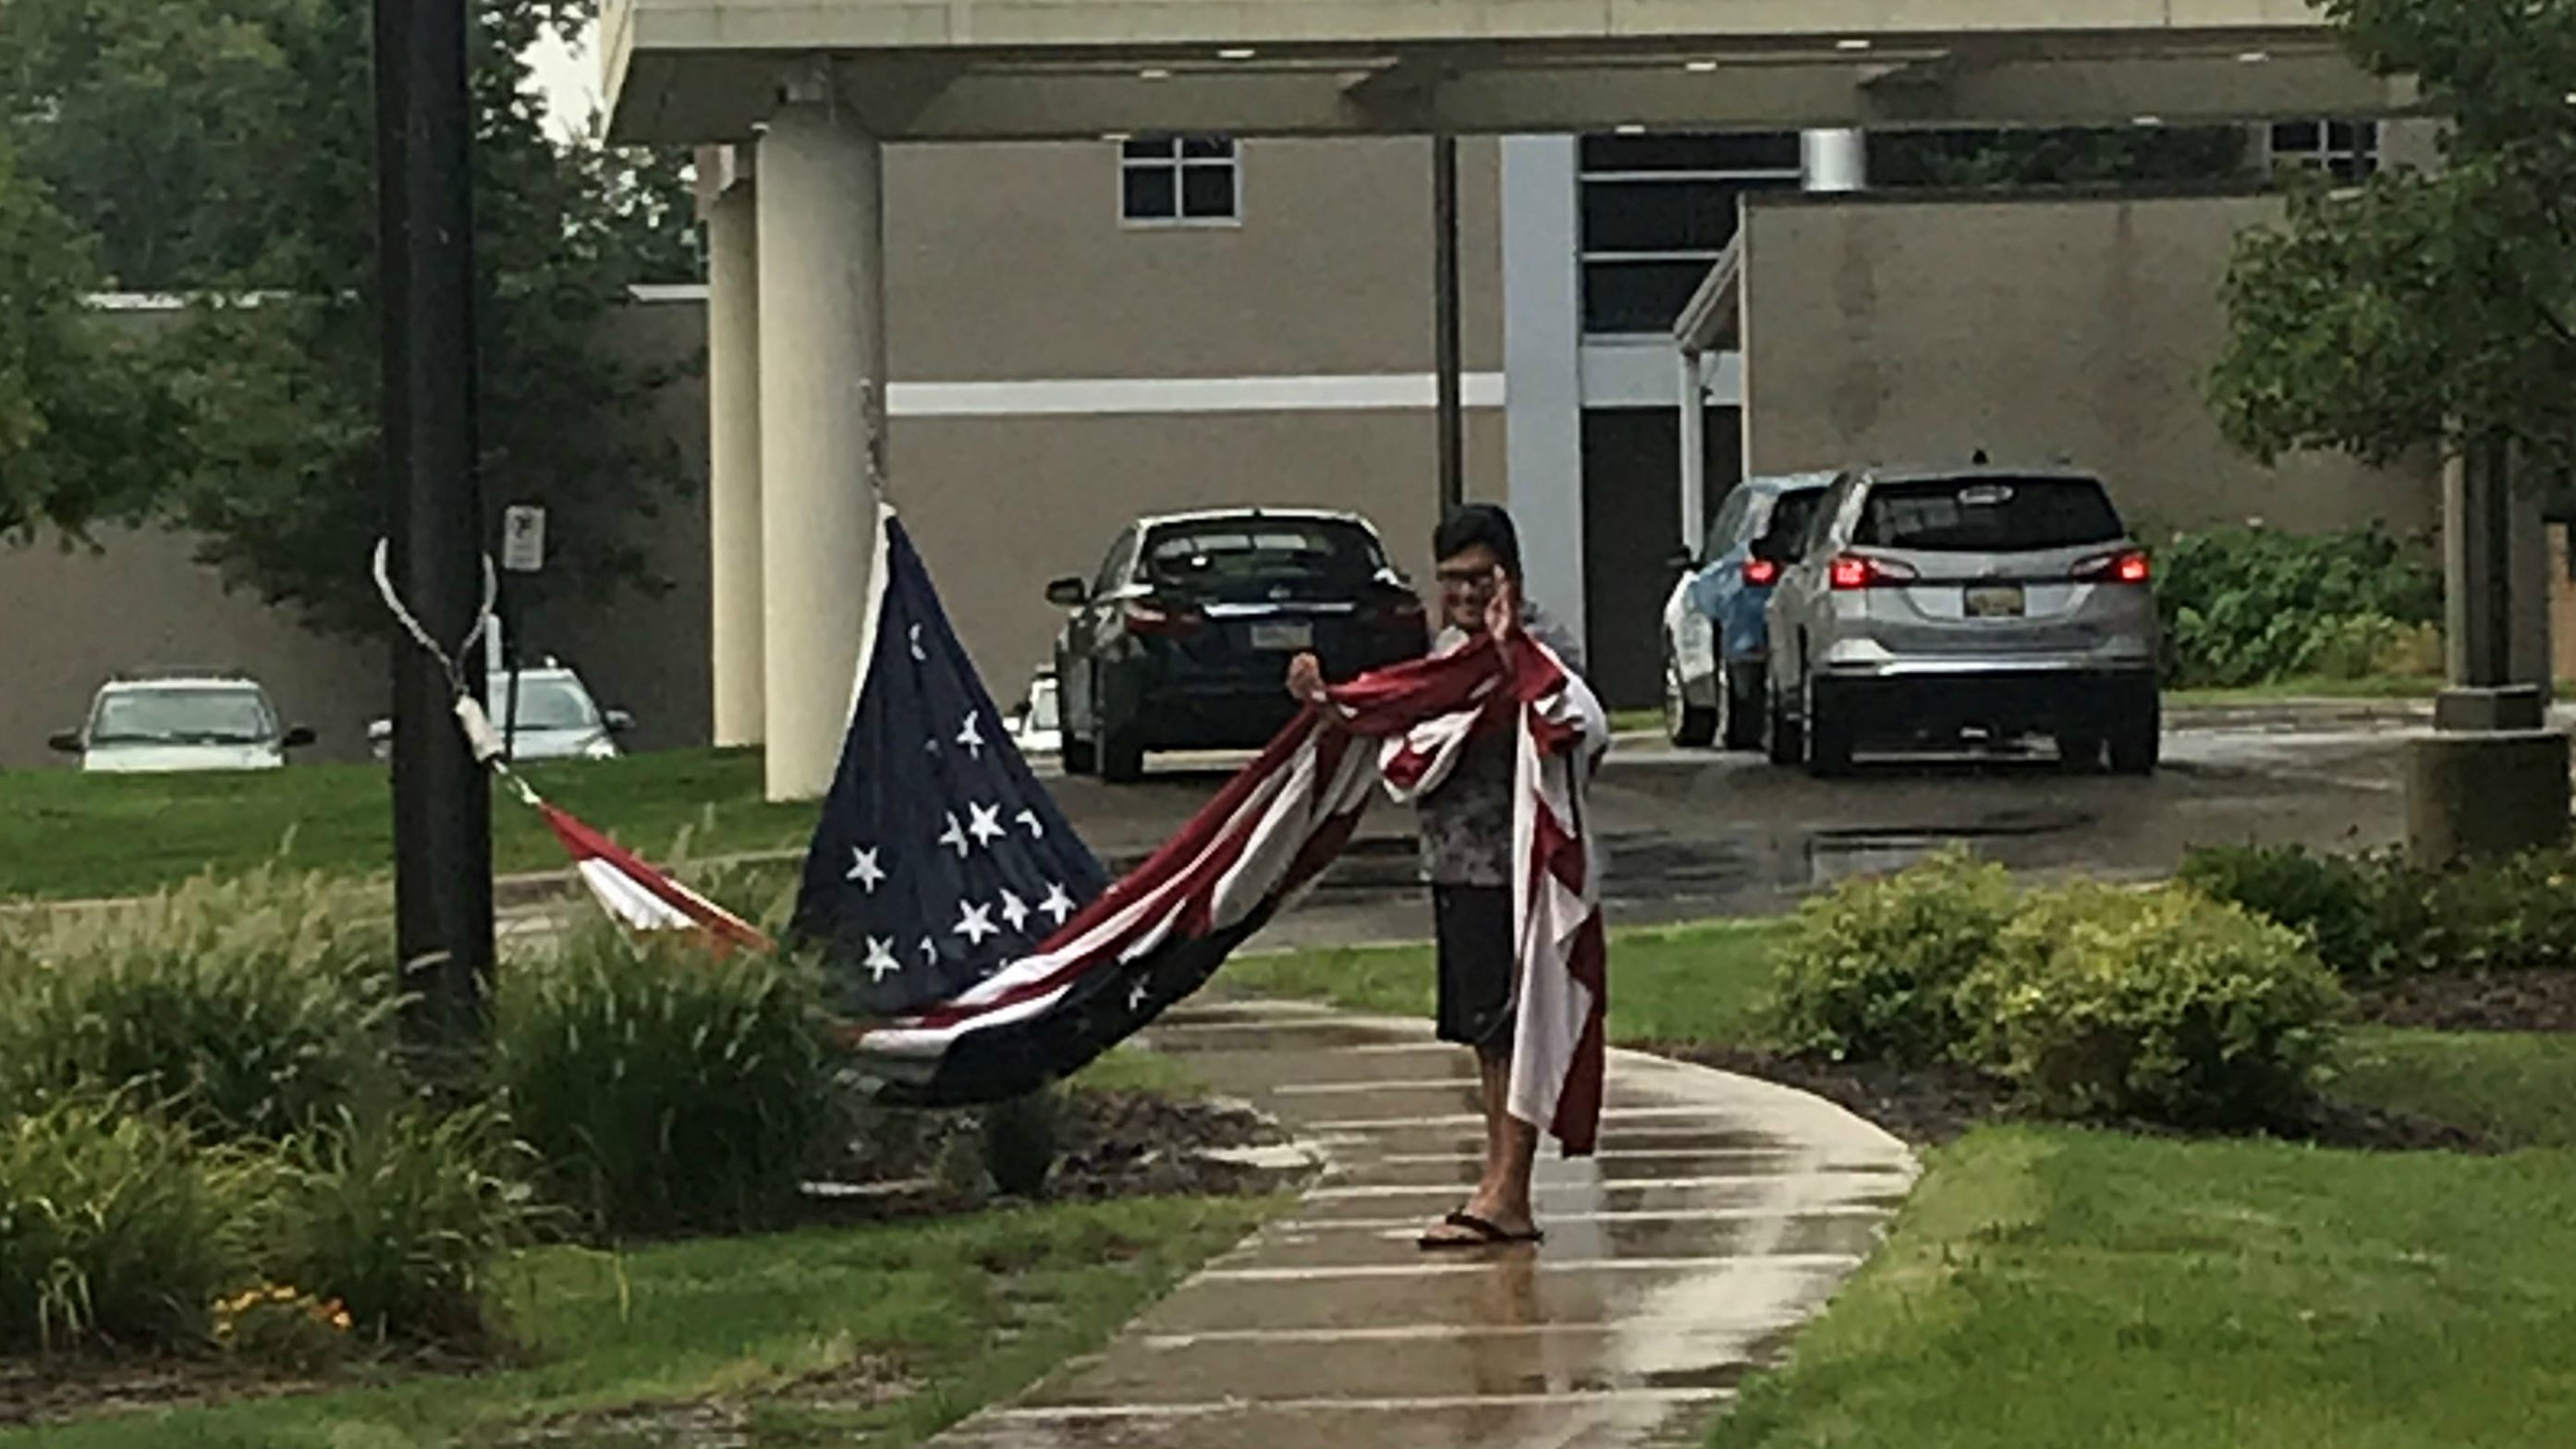 Putnam: When the Stars and Stripes fell in the rain, he acted to keep it off the ground